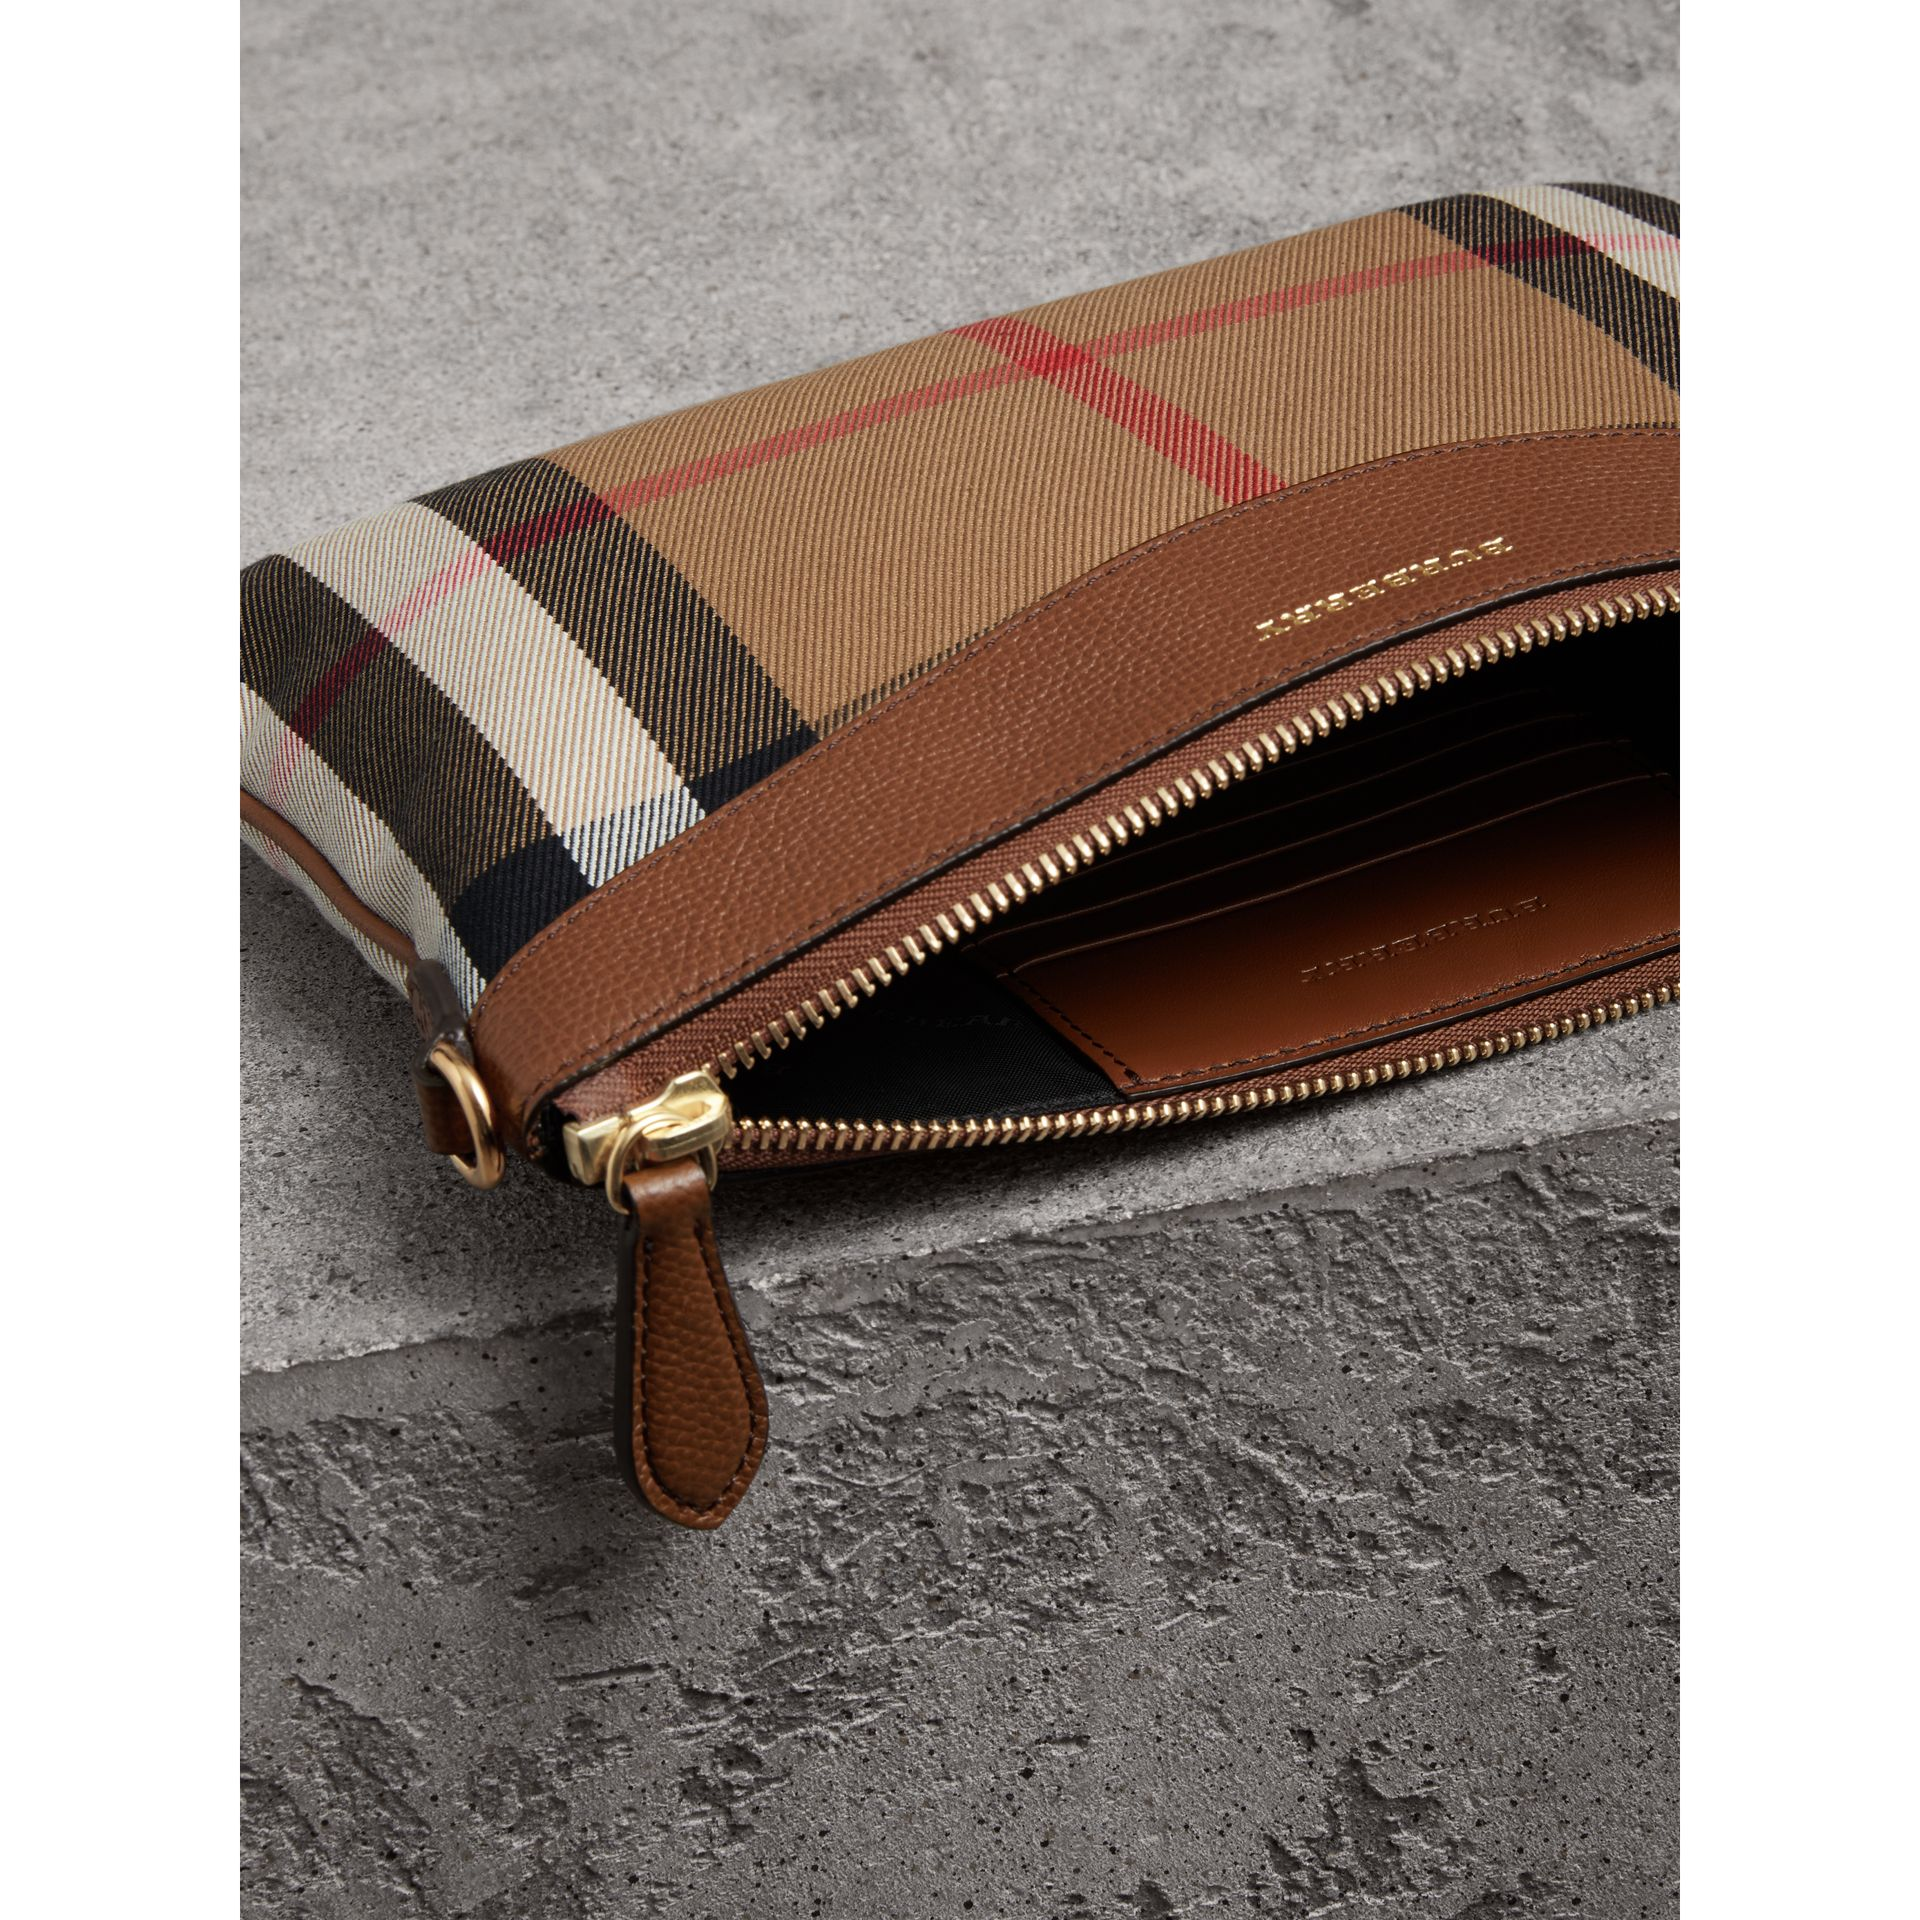 House Check and Leather Clutch Bag in Tan - Women | Burberry Singapore - gallery image 4